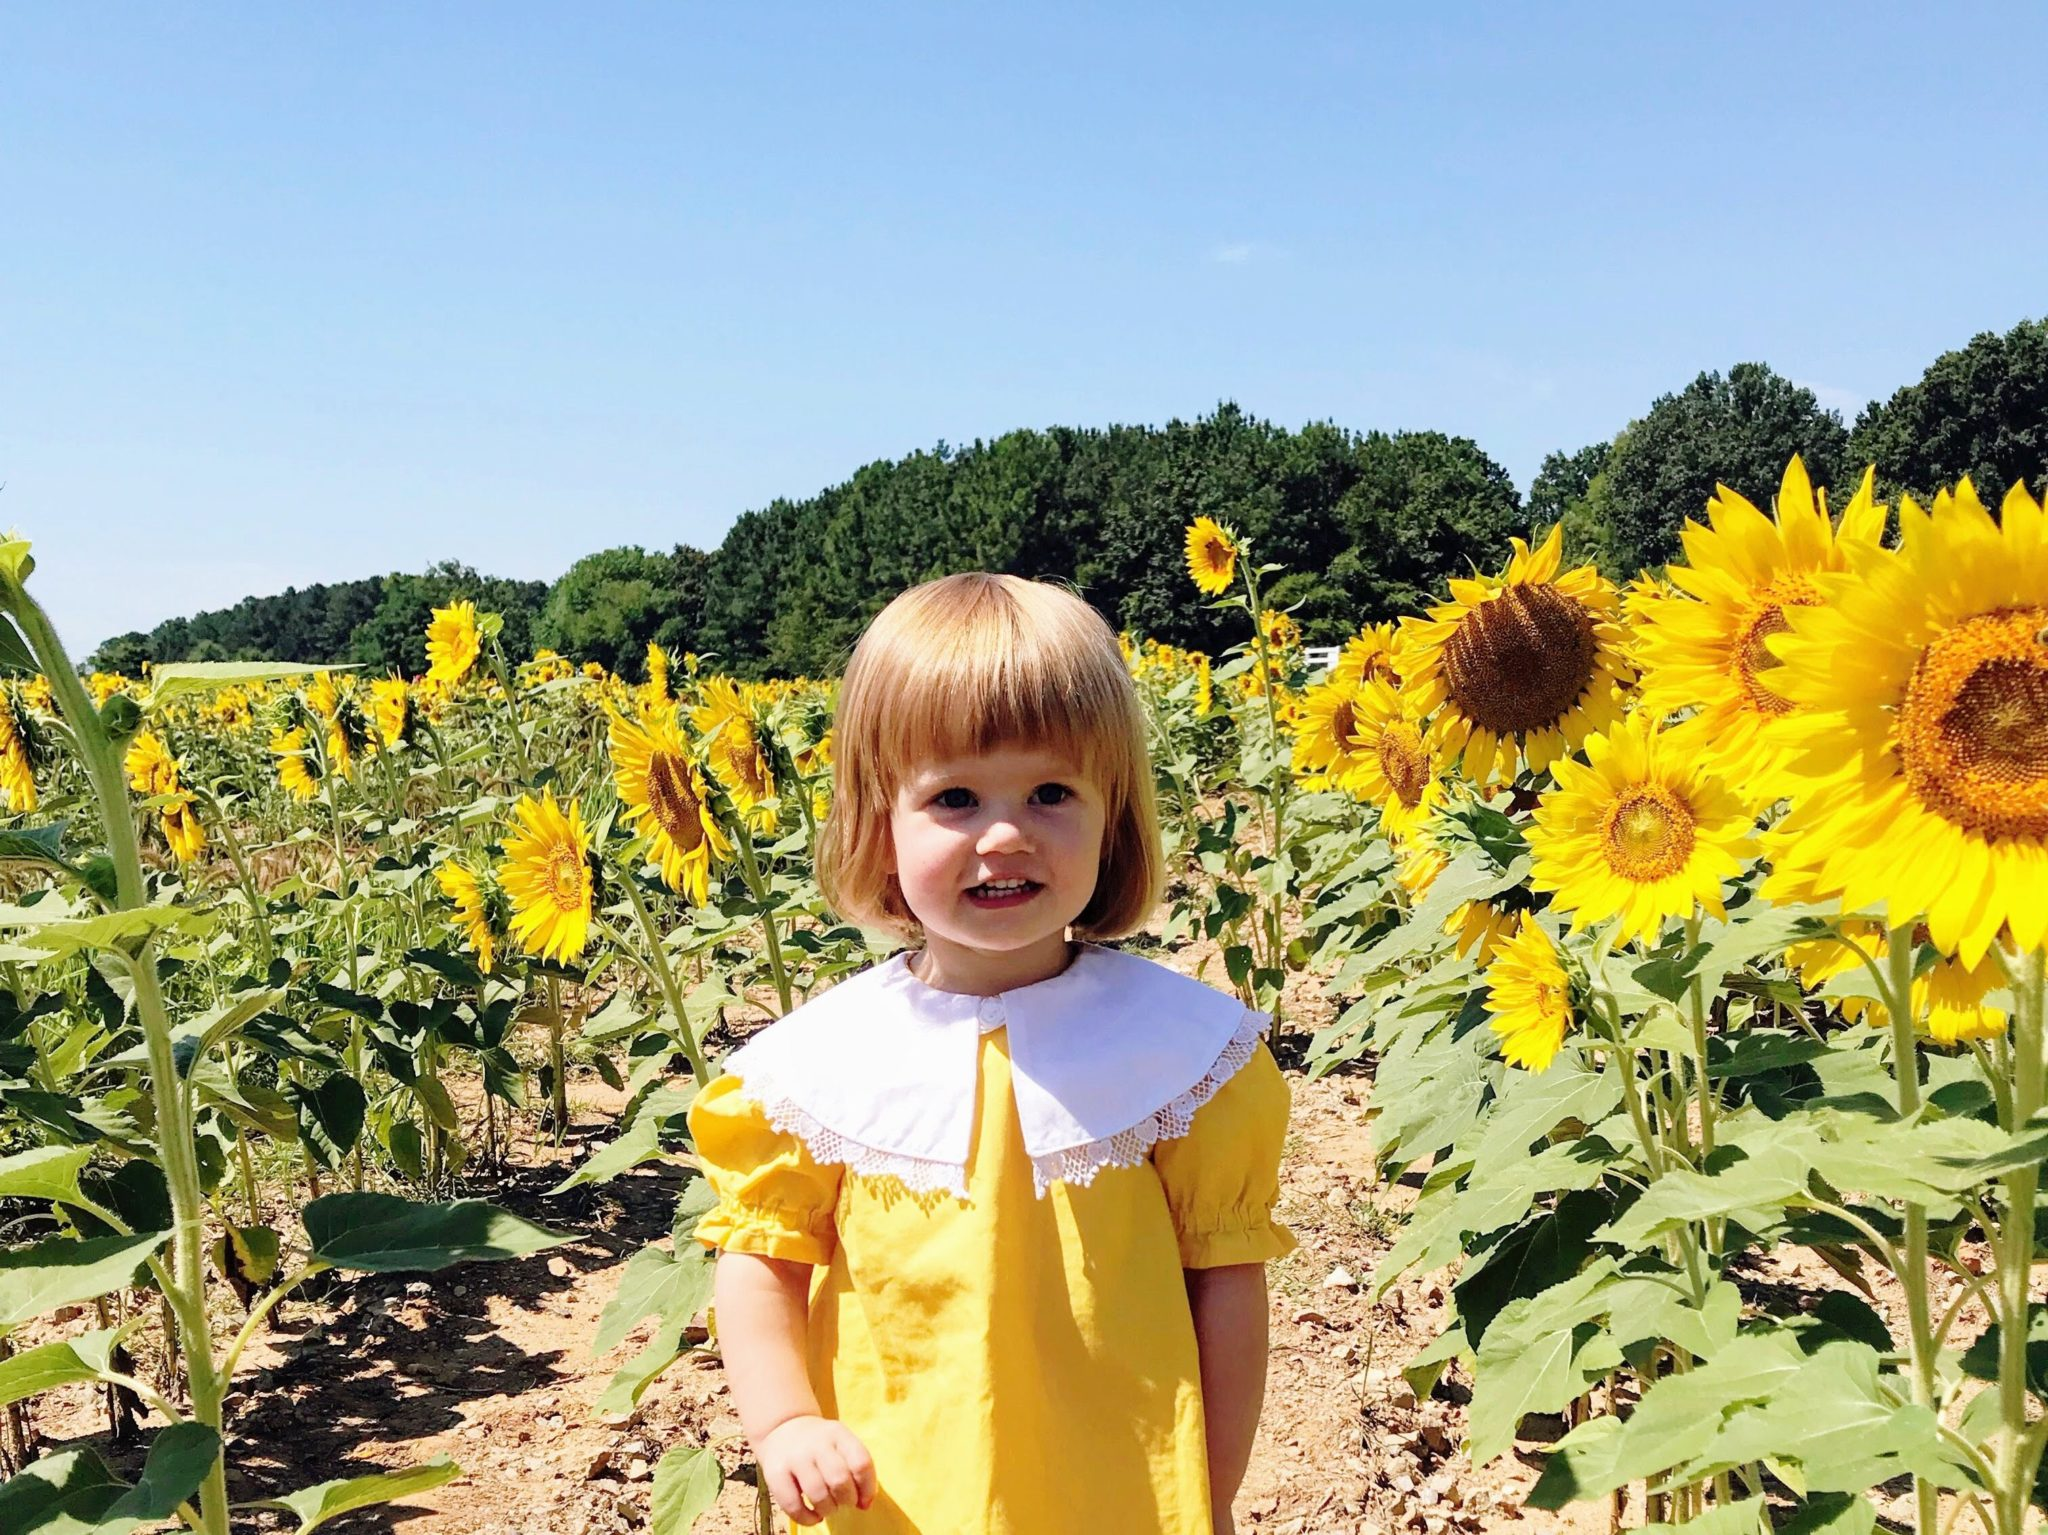 lenora in the sunflowers - august goals